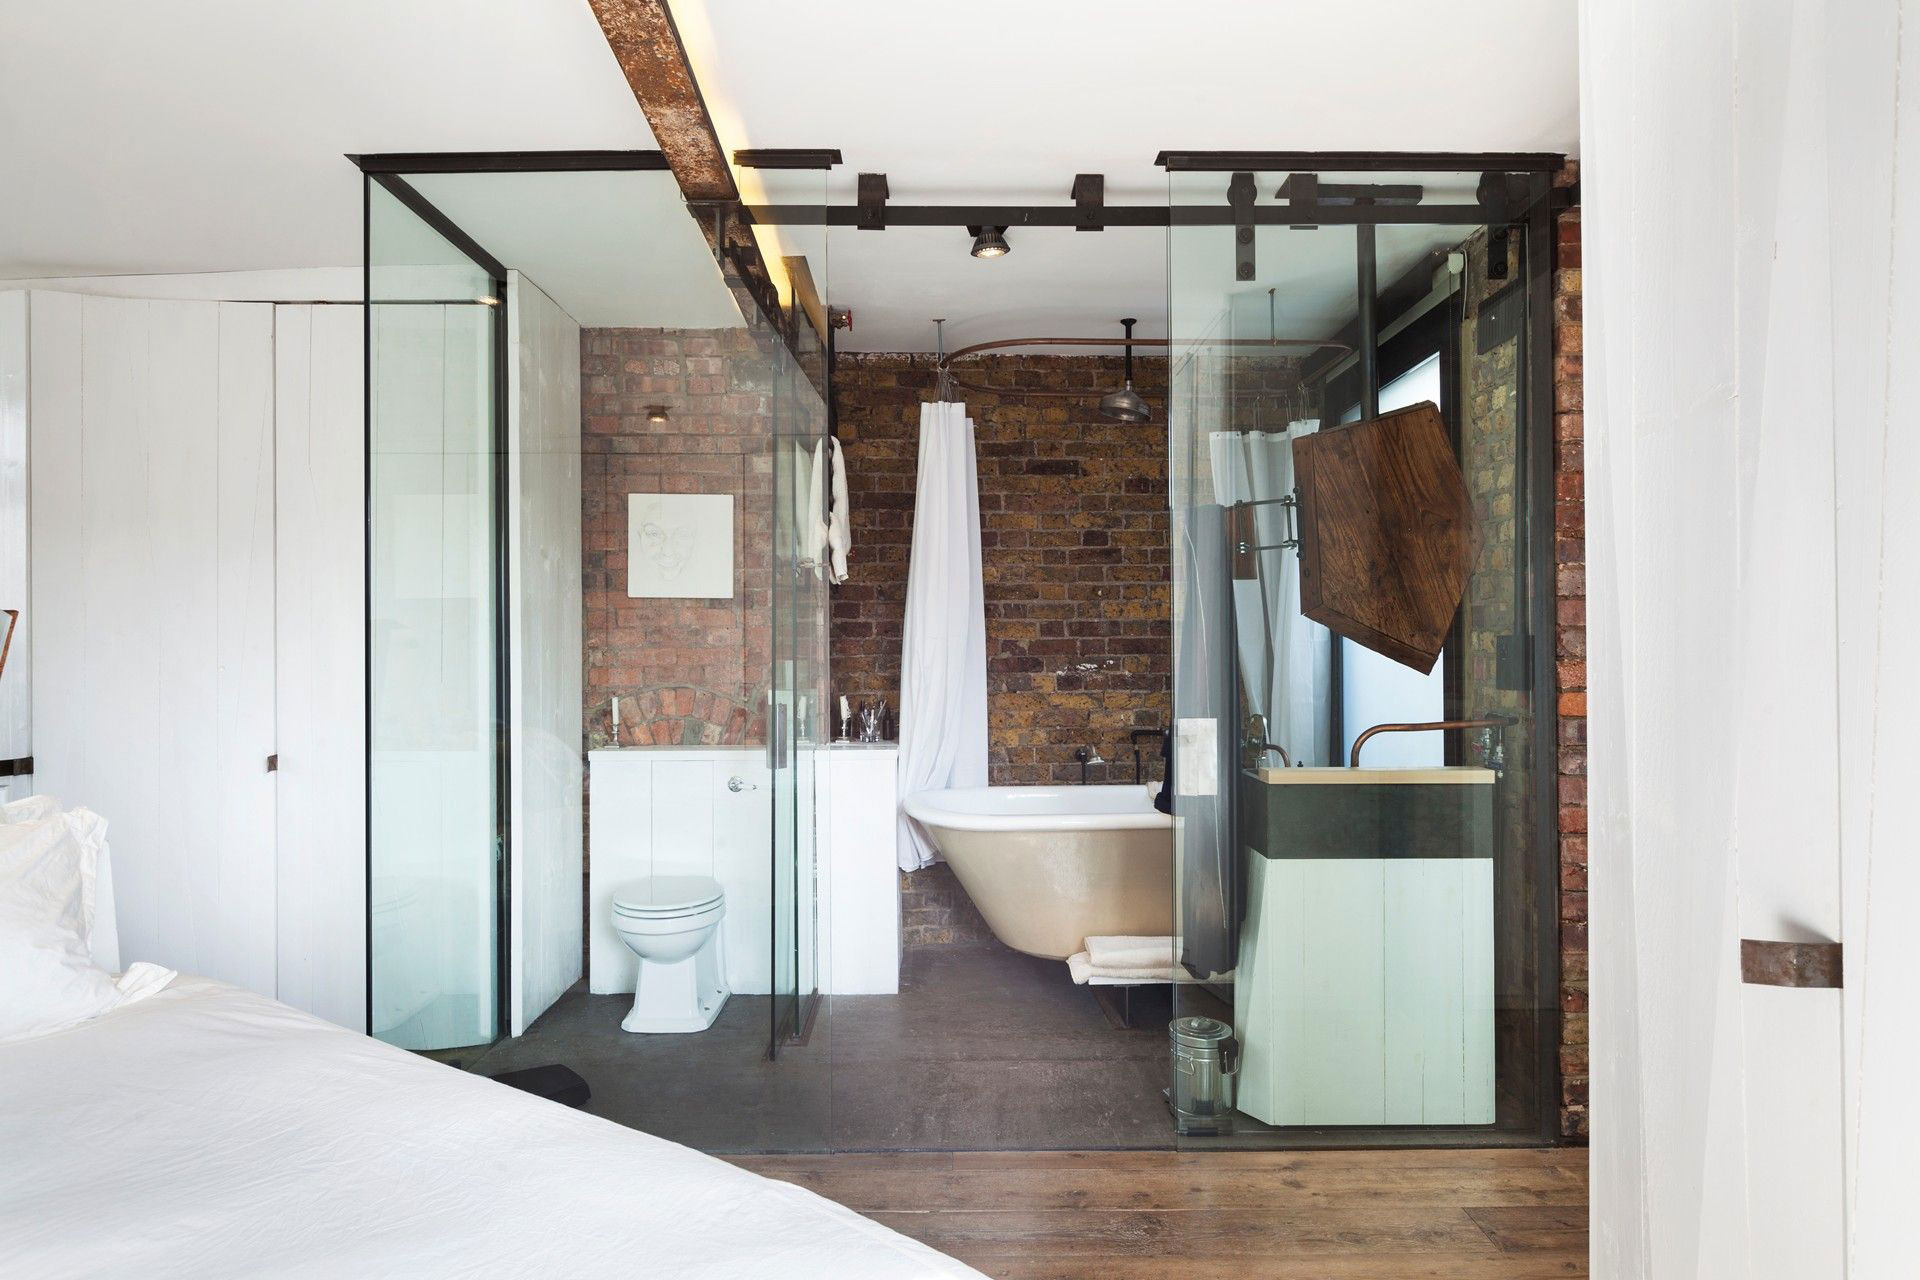 Bathroom, Glass Walls, Archer Street Apartment in London, England